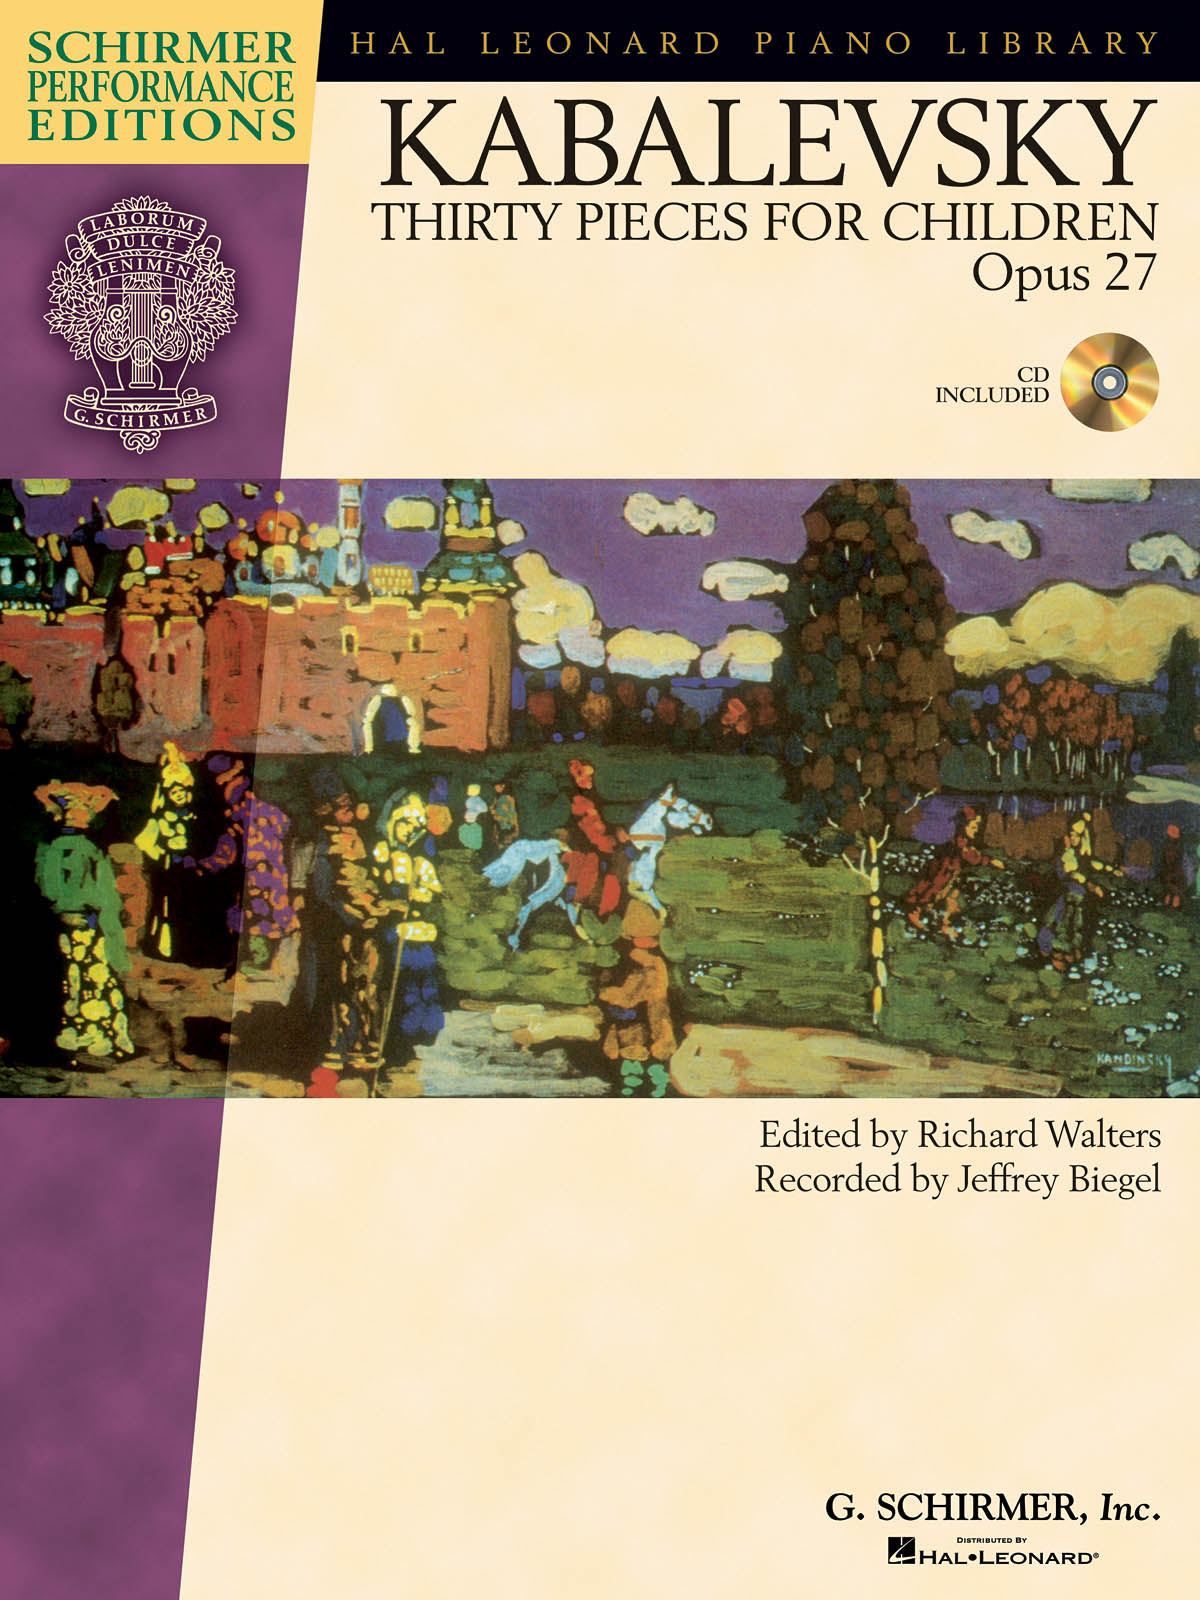 Kabalevsky: 30 Pieces for Children, Op. 27